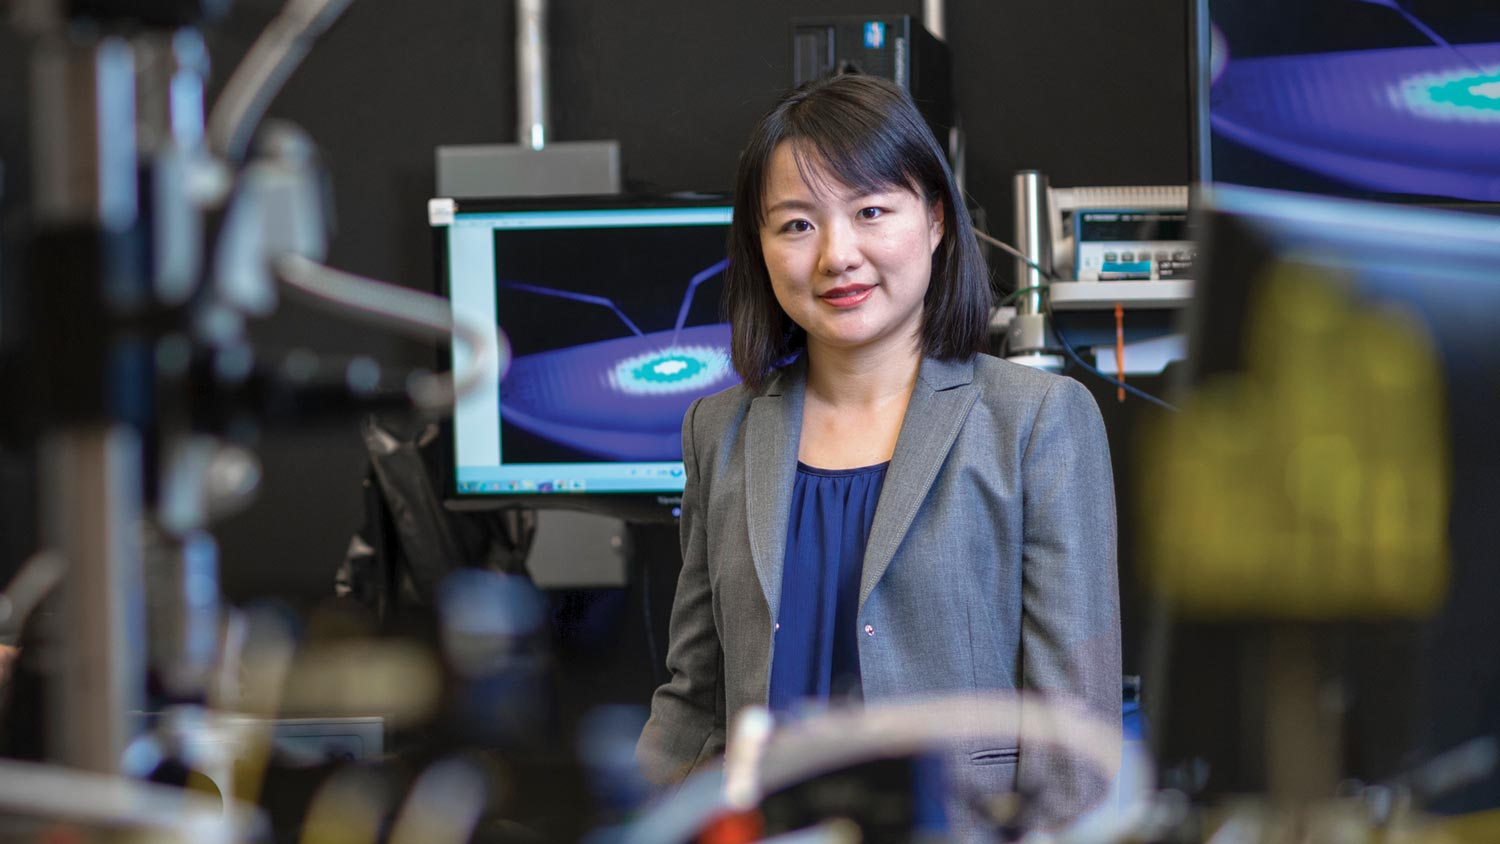 Jing Zhang is pictured in her nanotech research lab.